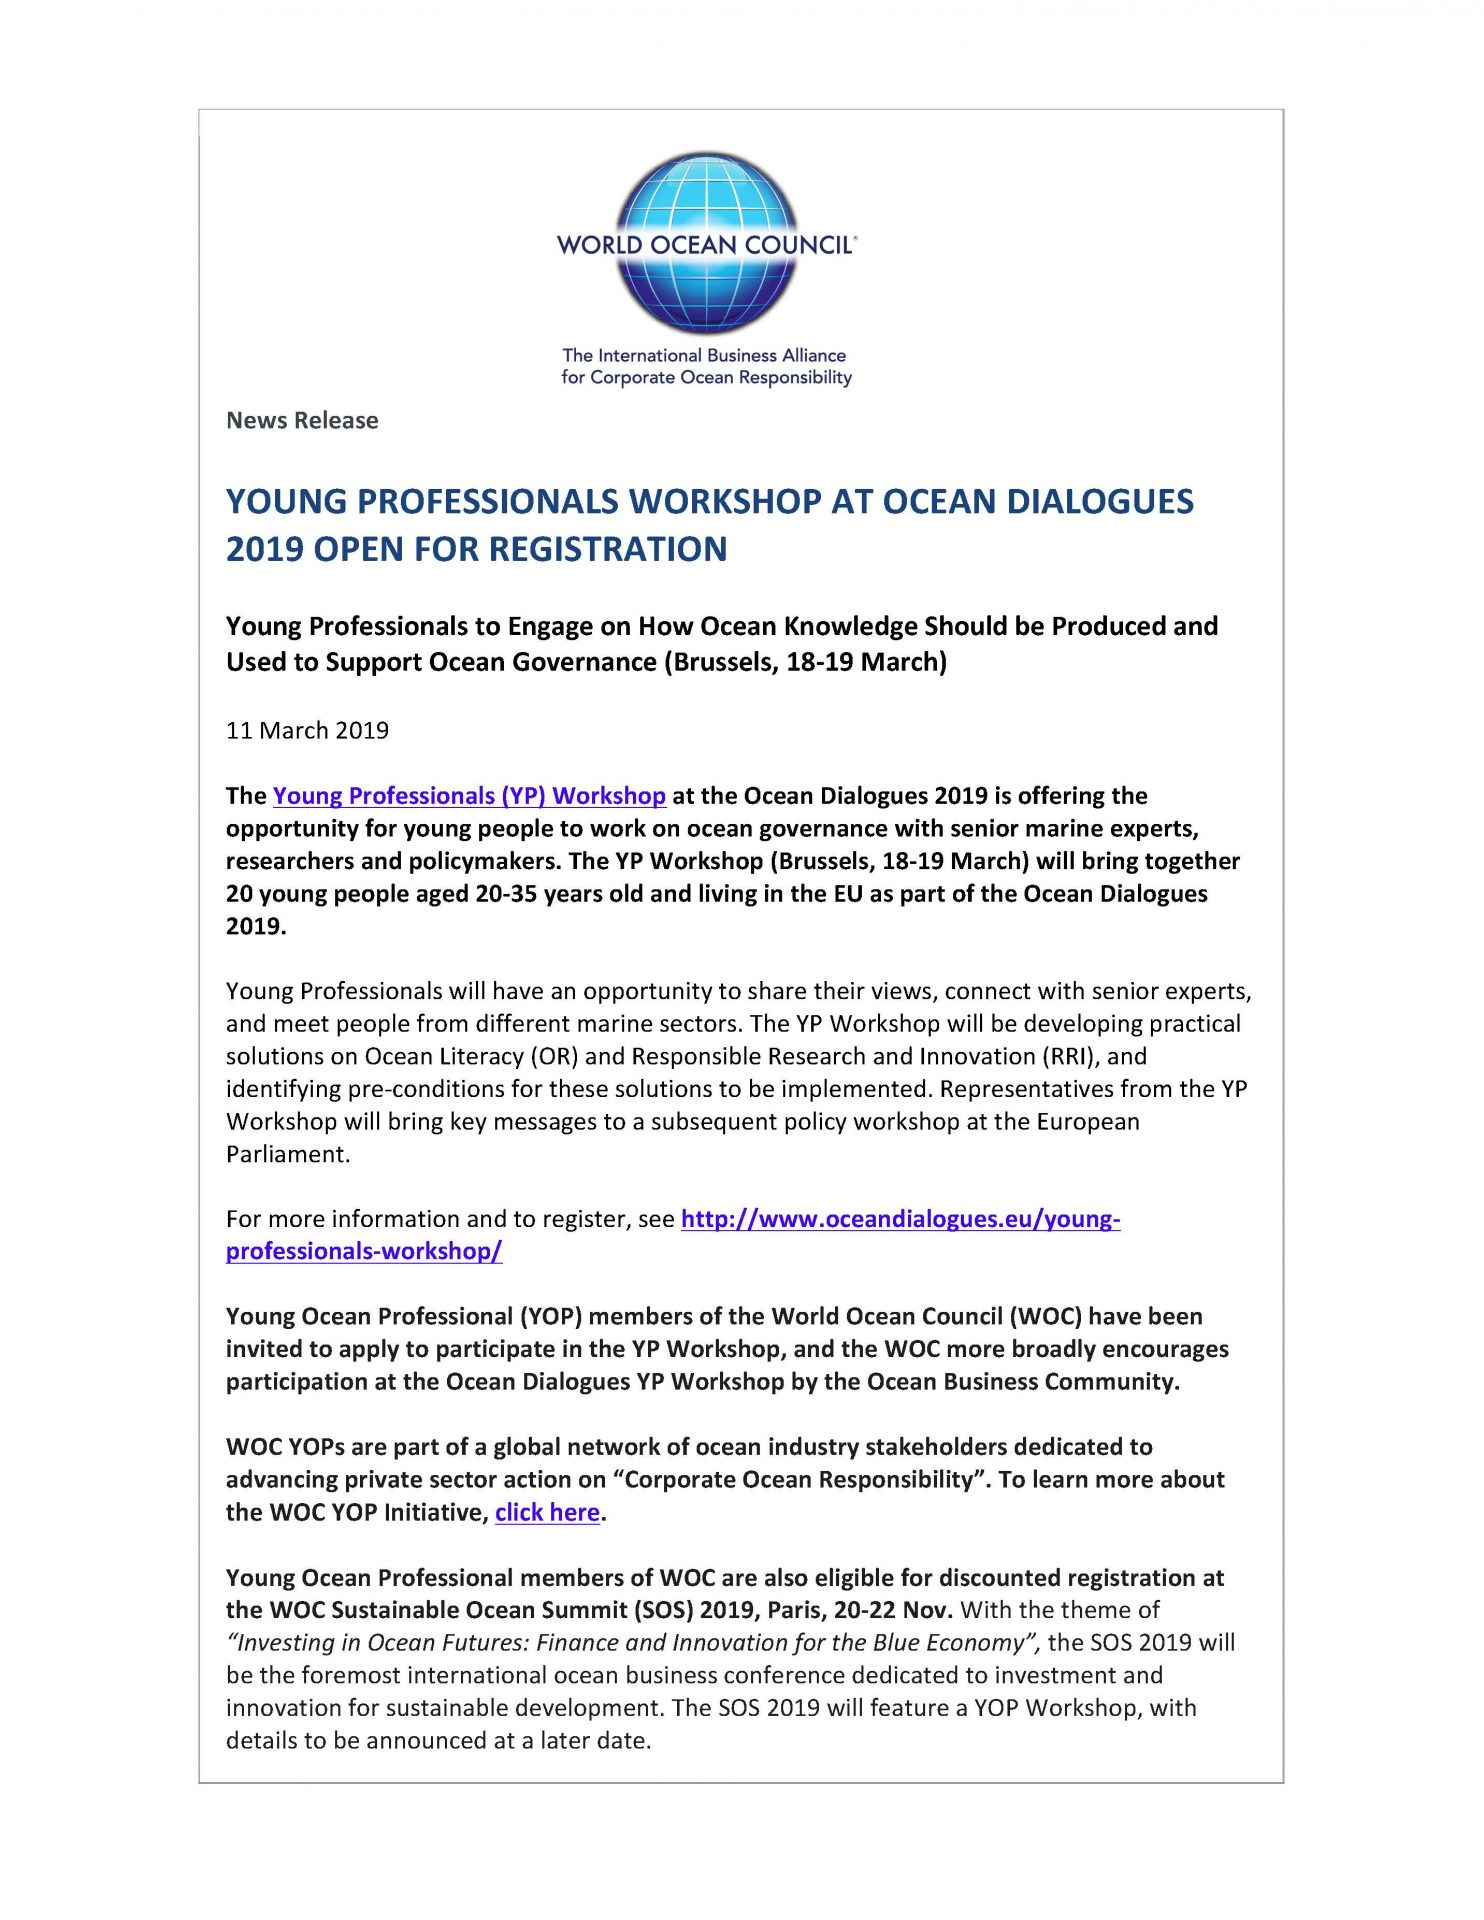 Young Professionals Workshop at Ocean Dialogues 2019 Open for Registration - 11 March 2019